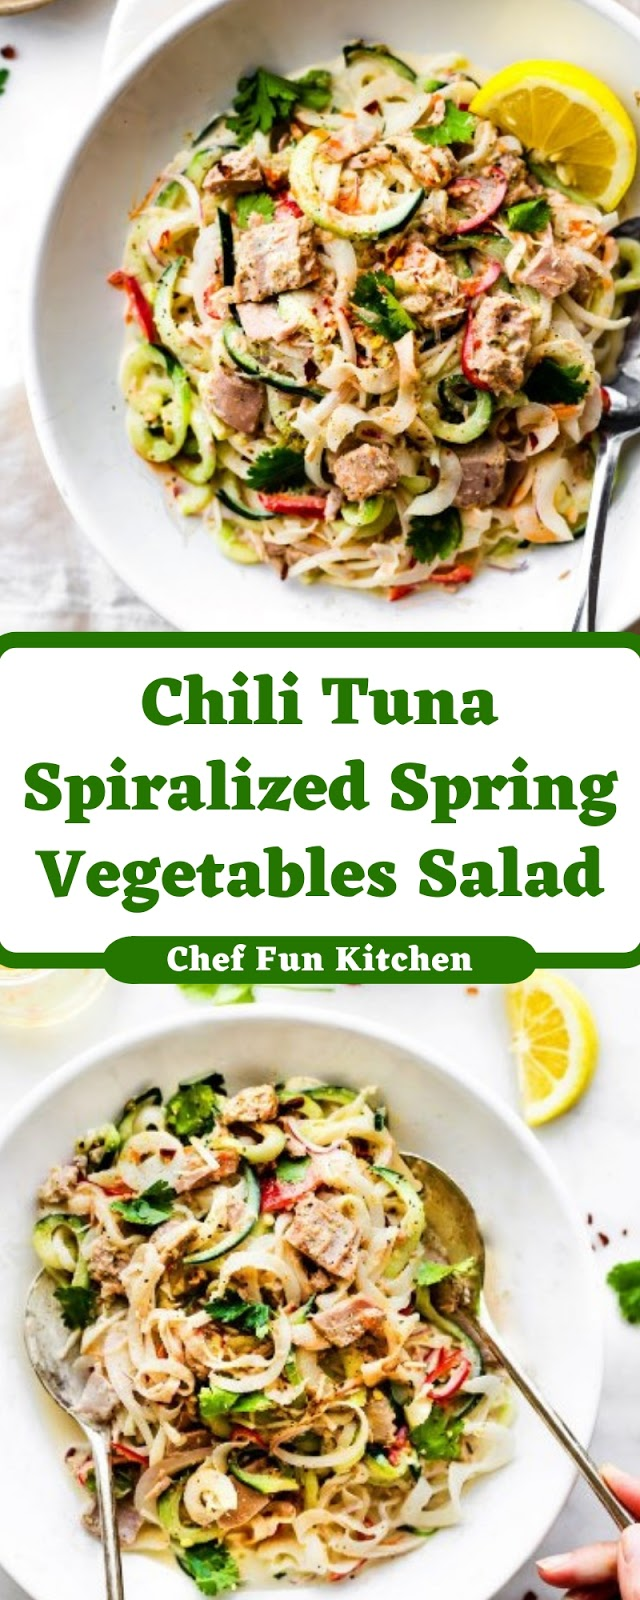 Chili Tuna Spiralized Spring Vegetables Salad